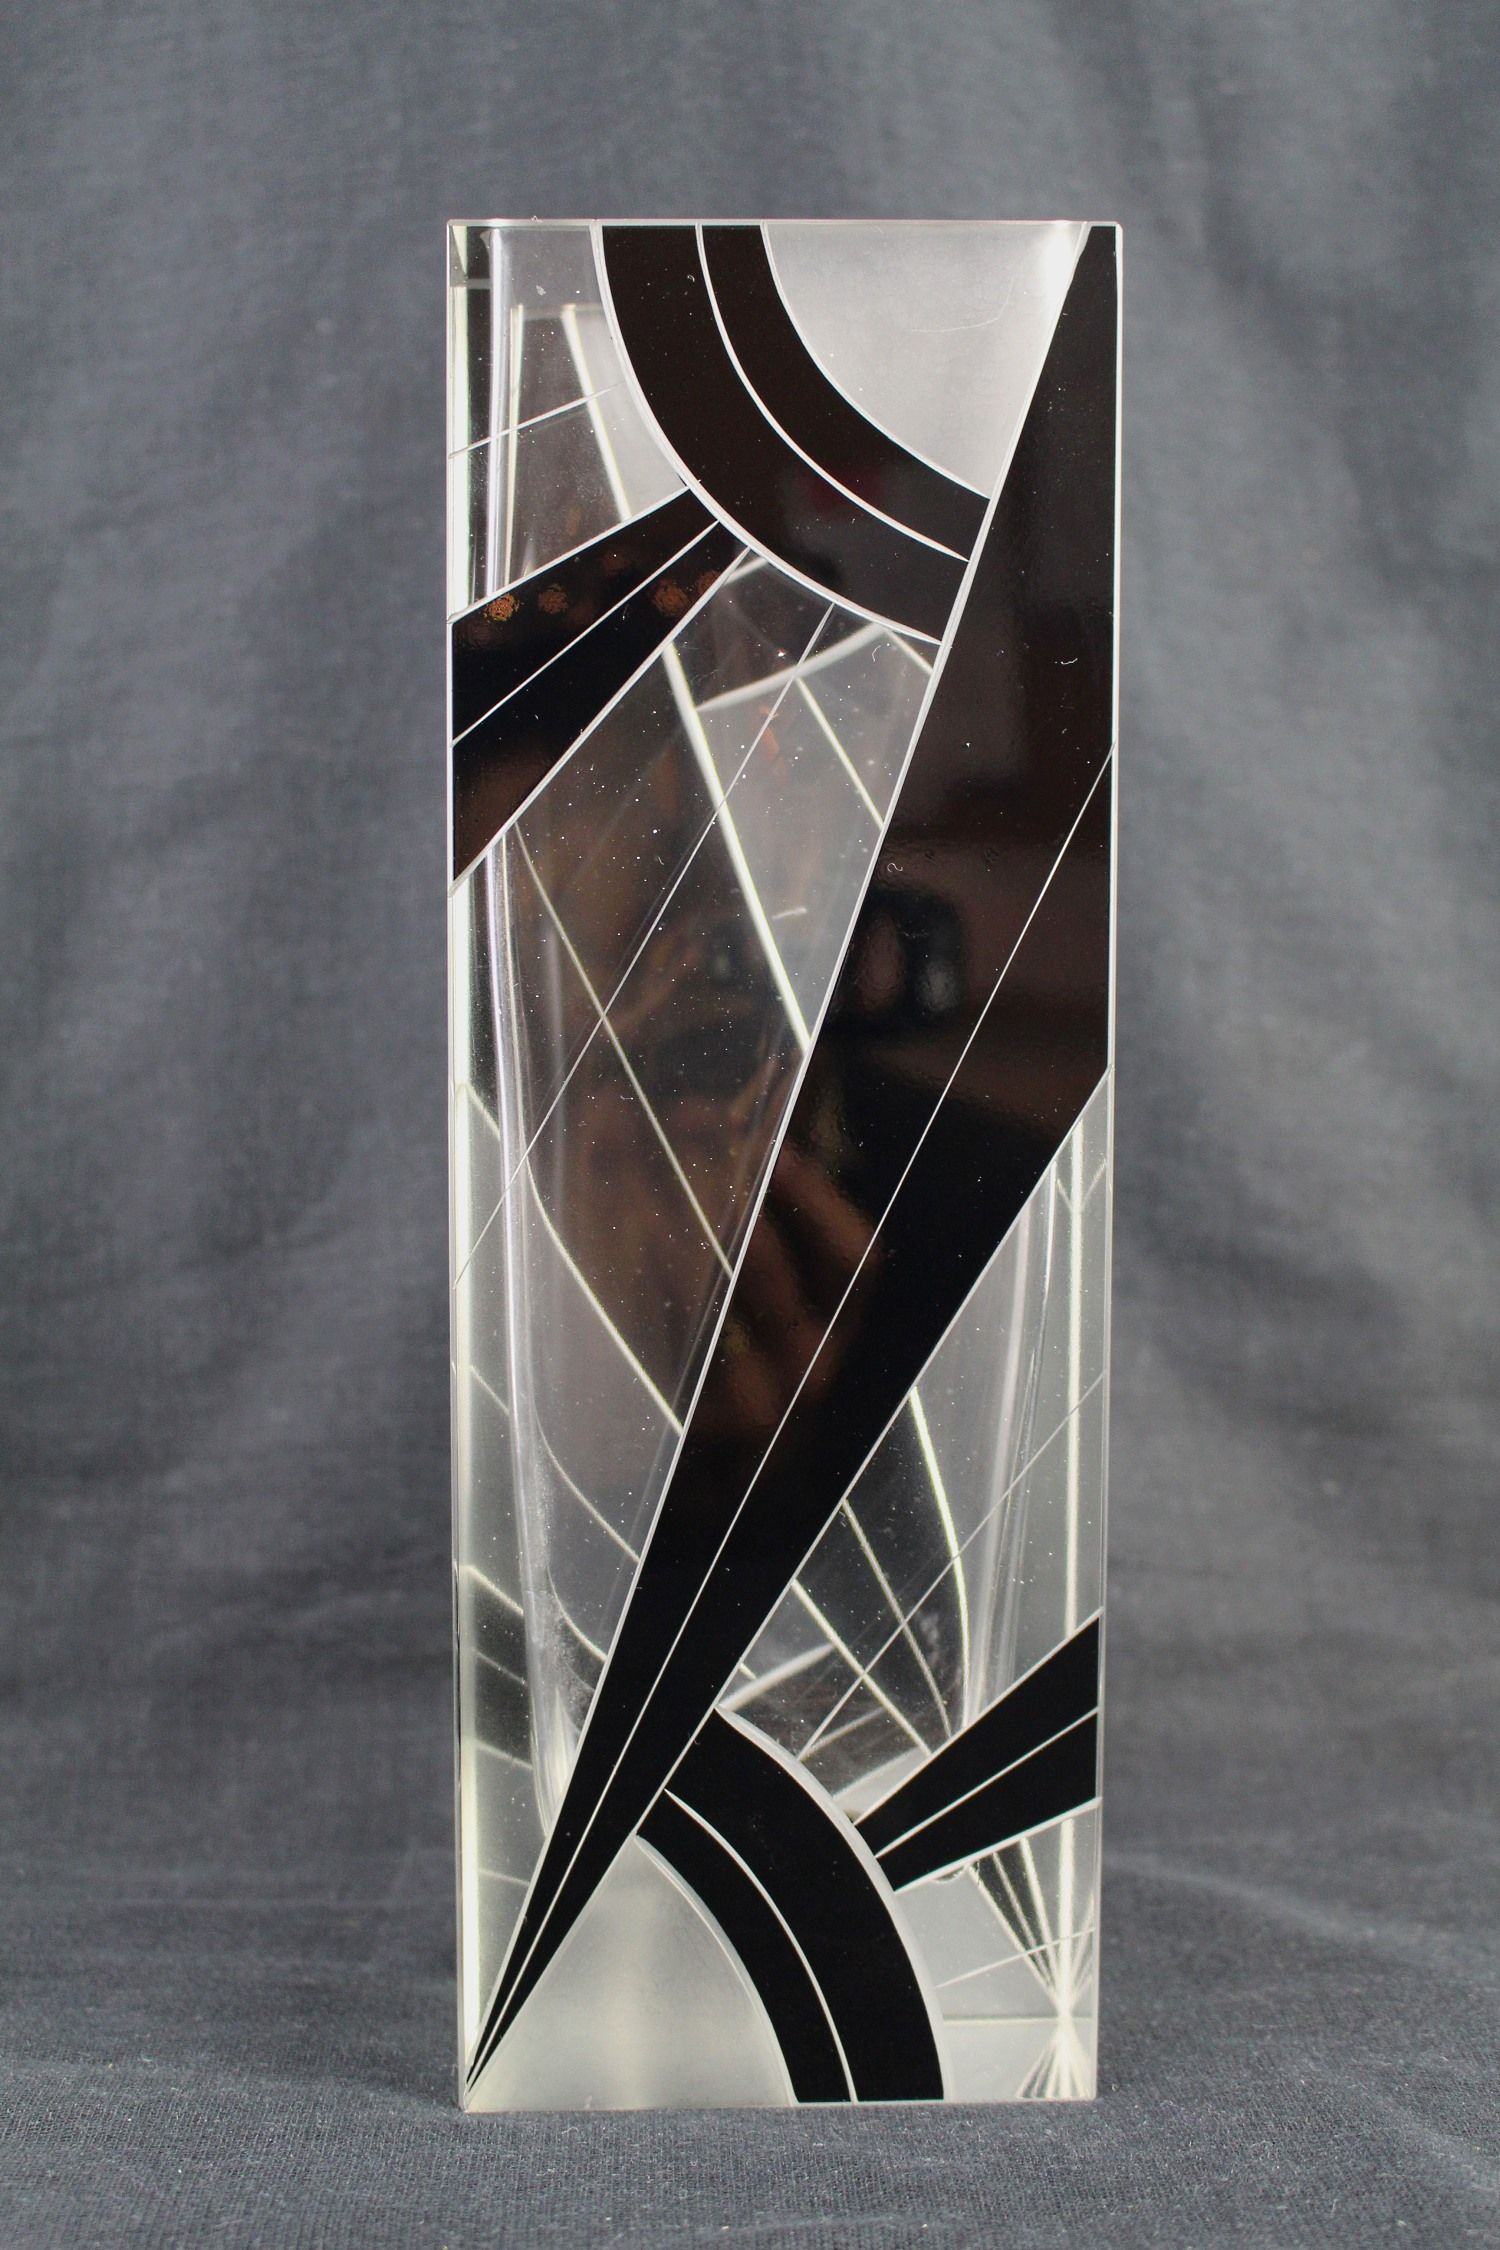 Art deco glass vases jeroen markies art deco pinterest an art deco glass vase with frosted and black geometric design floridaeventfo Image collections